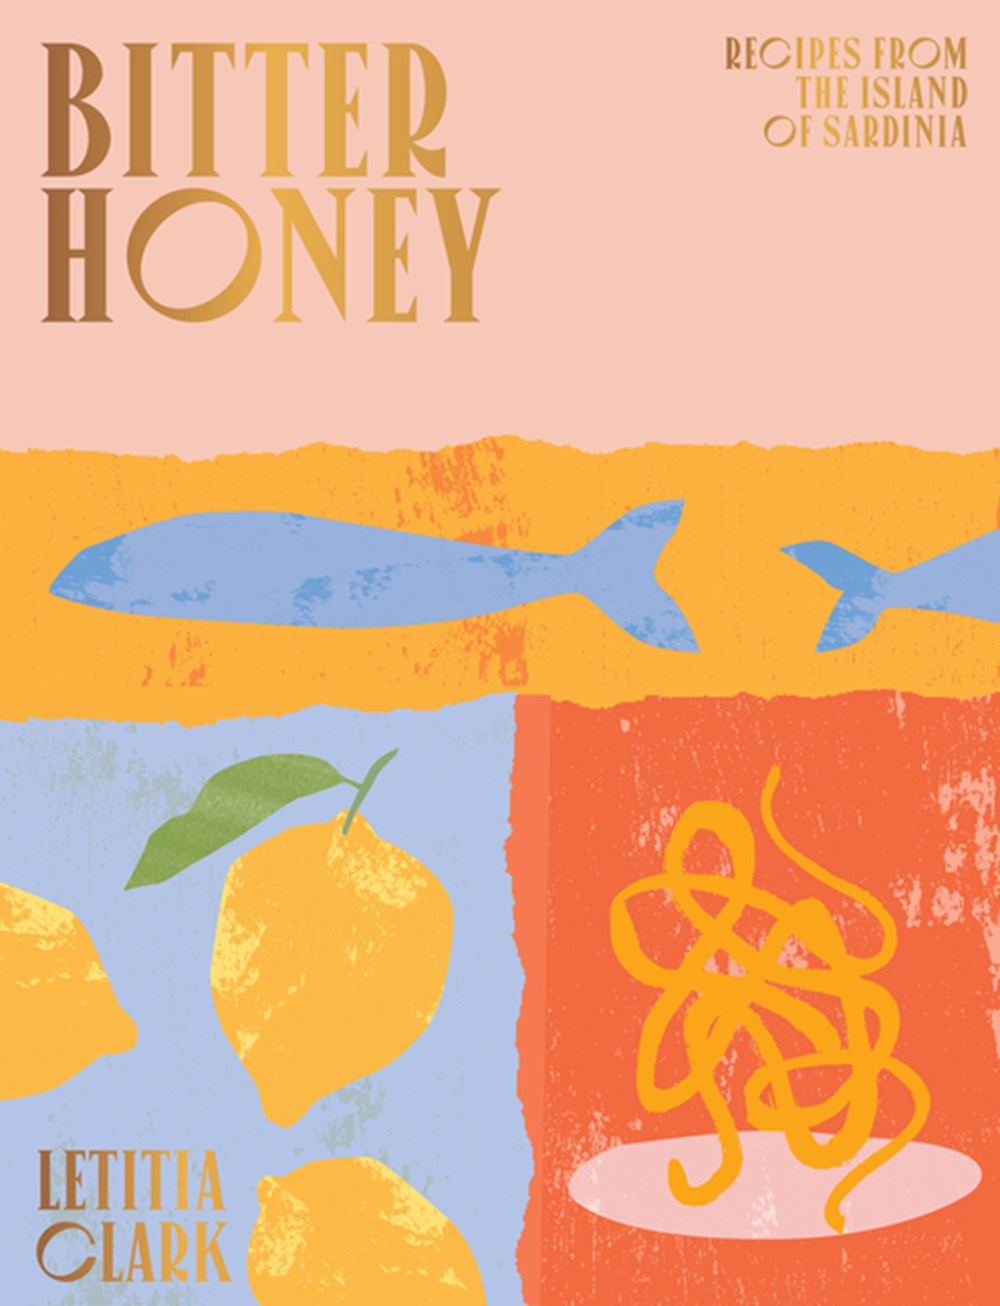 Bitter Honey Recipes and Stories from Sardinia